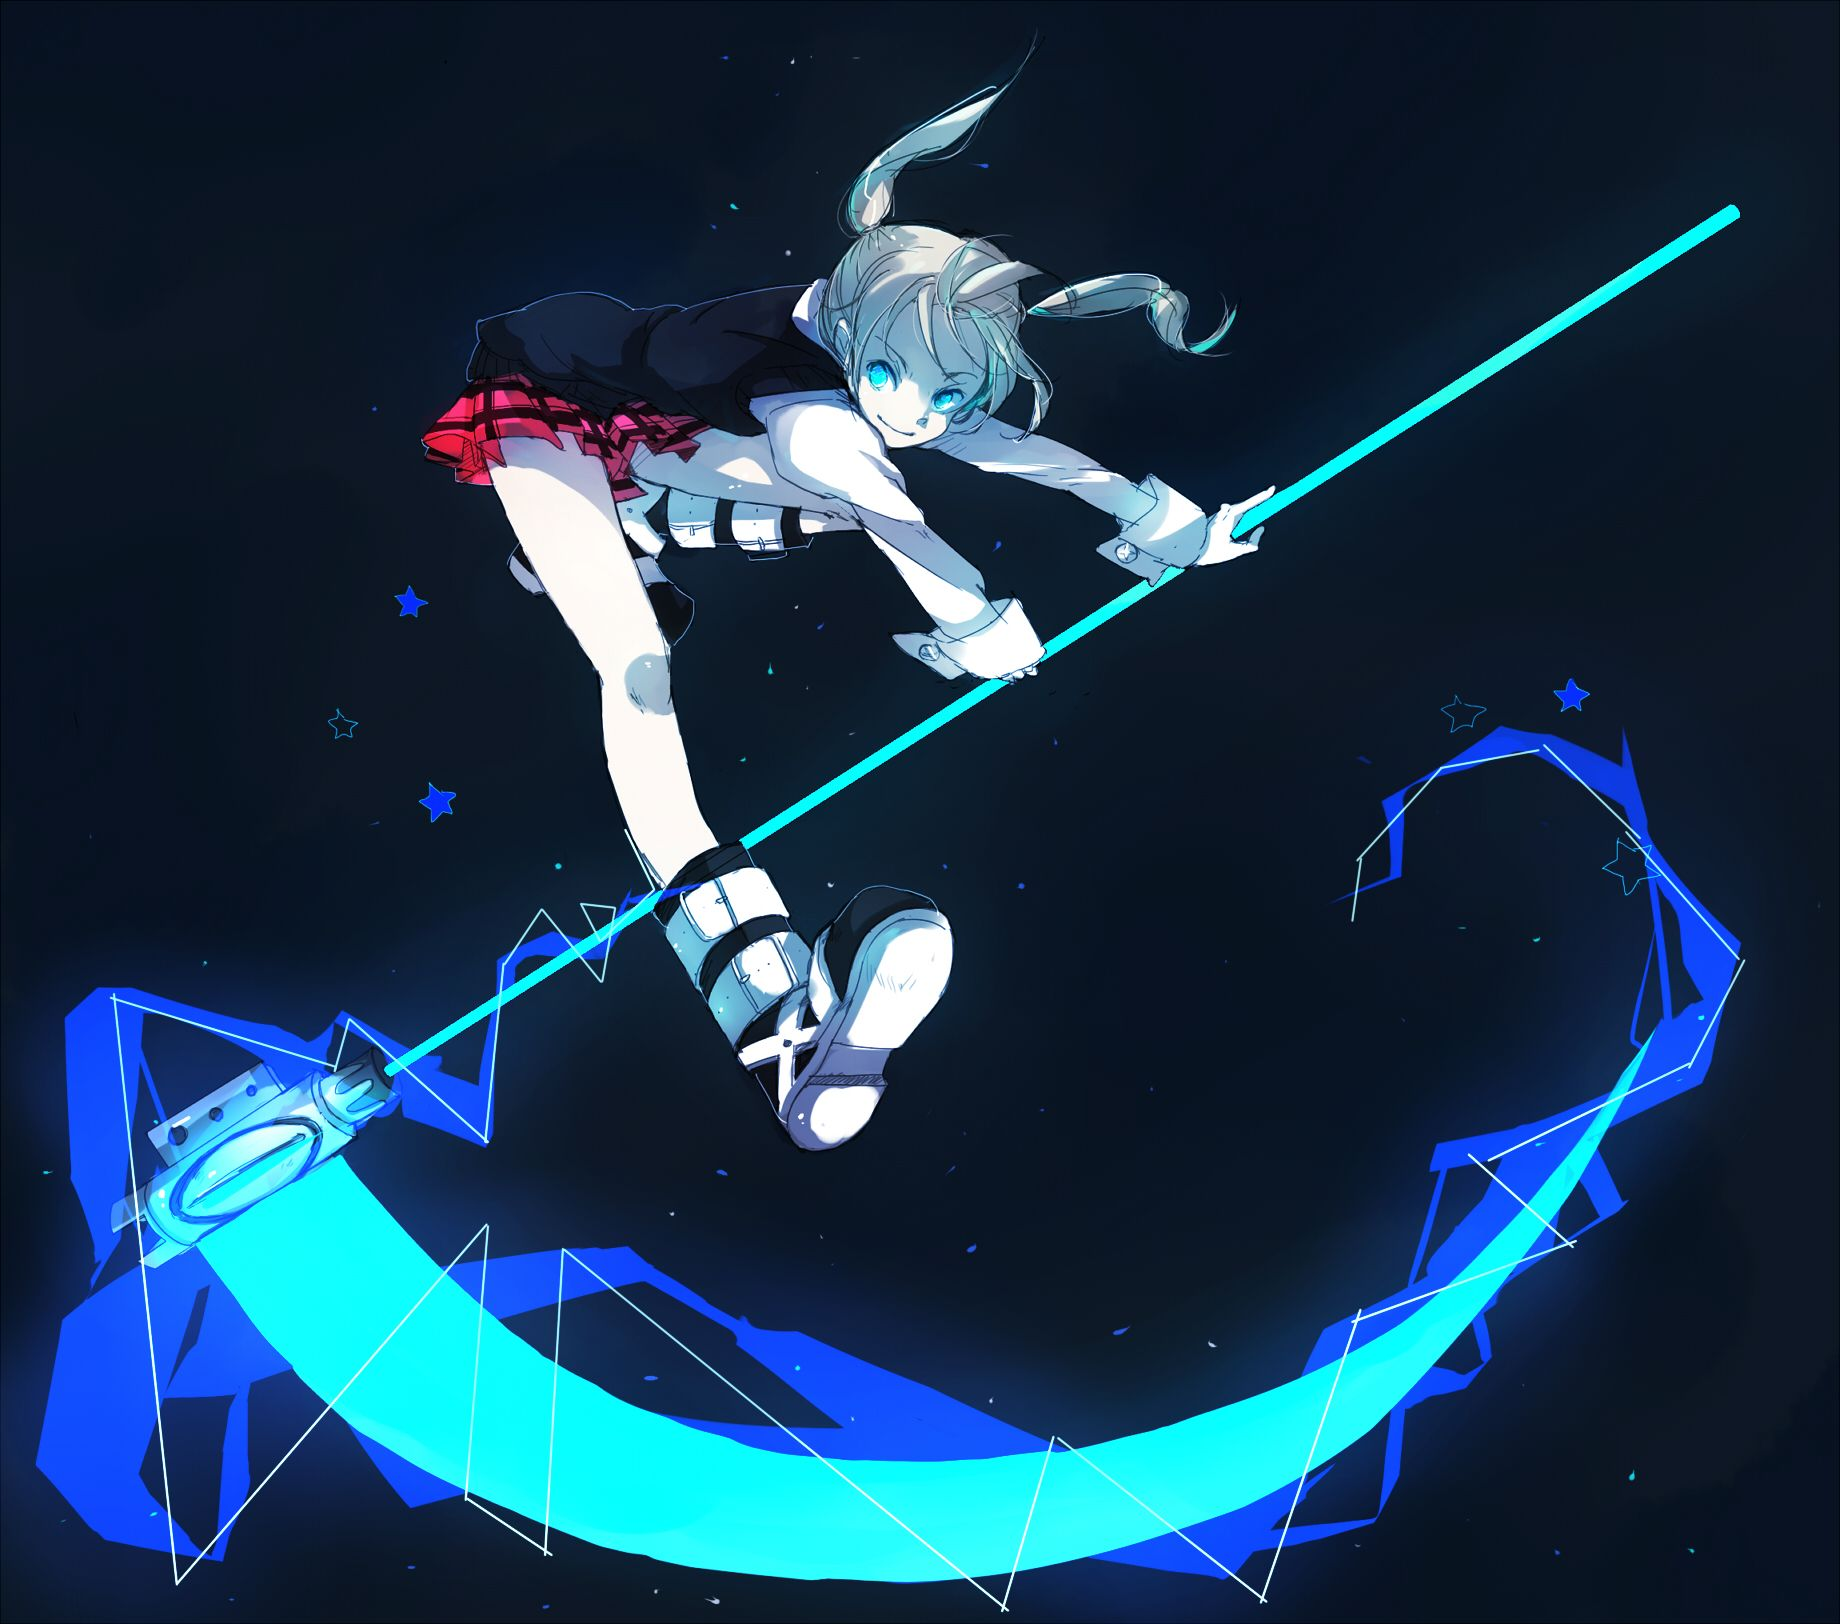 Soul Eater Maka as a Weapon | ... , SOUL EATER, Soul Eater Evans, Maka Albarn, Scythe, Glowing Weapons